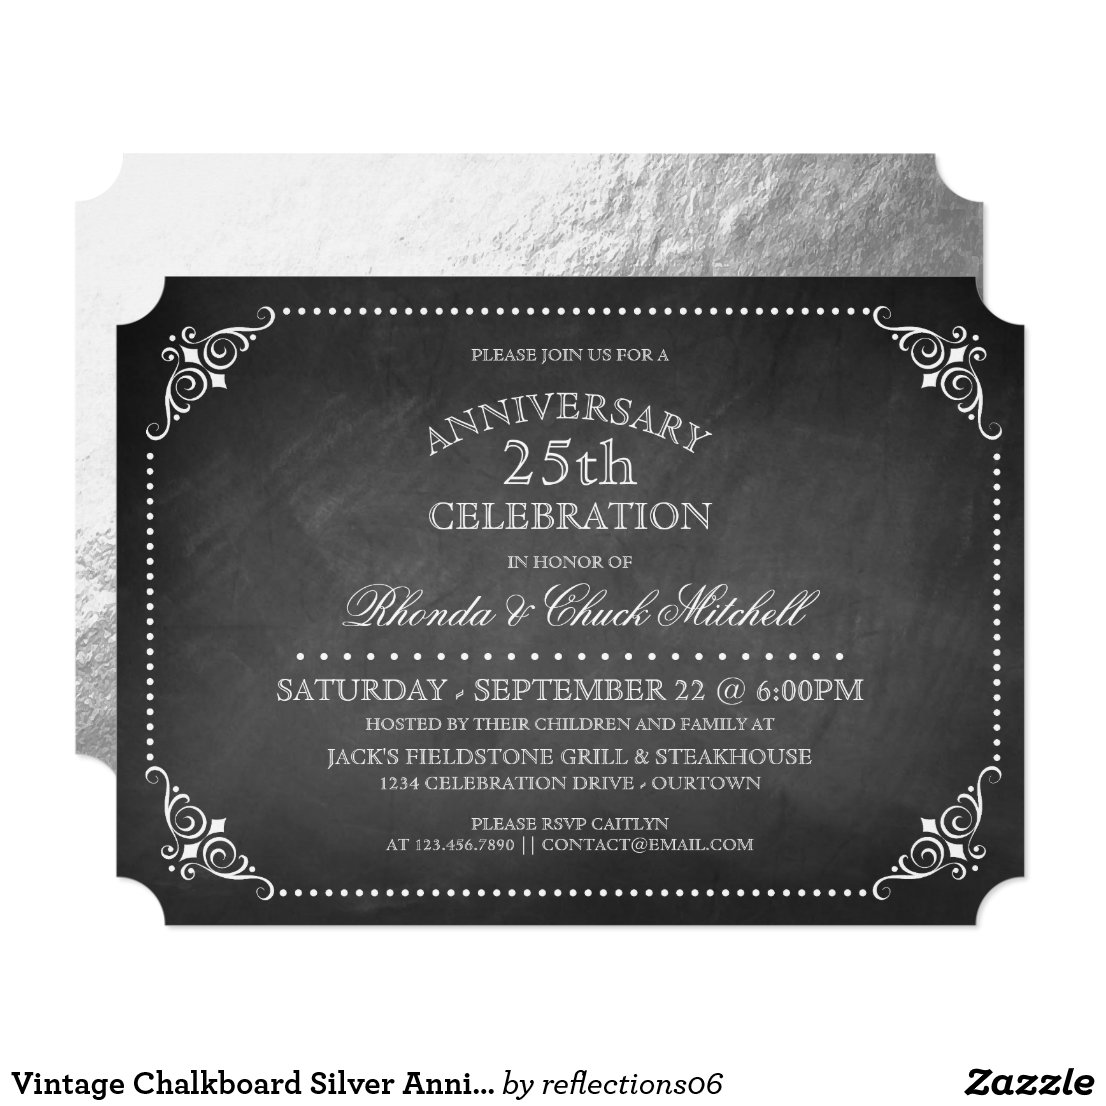 Vintage Chalkboard Silver Anniversary Party Invitation